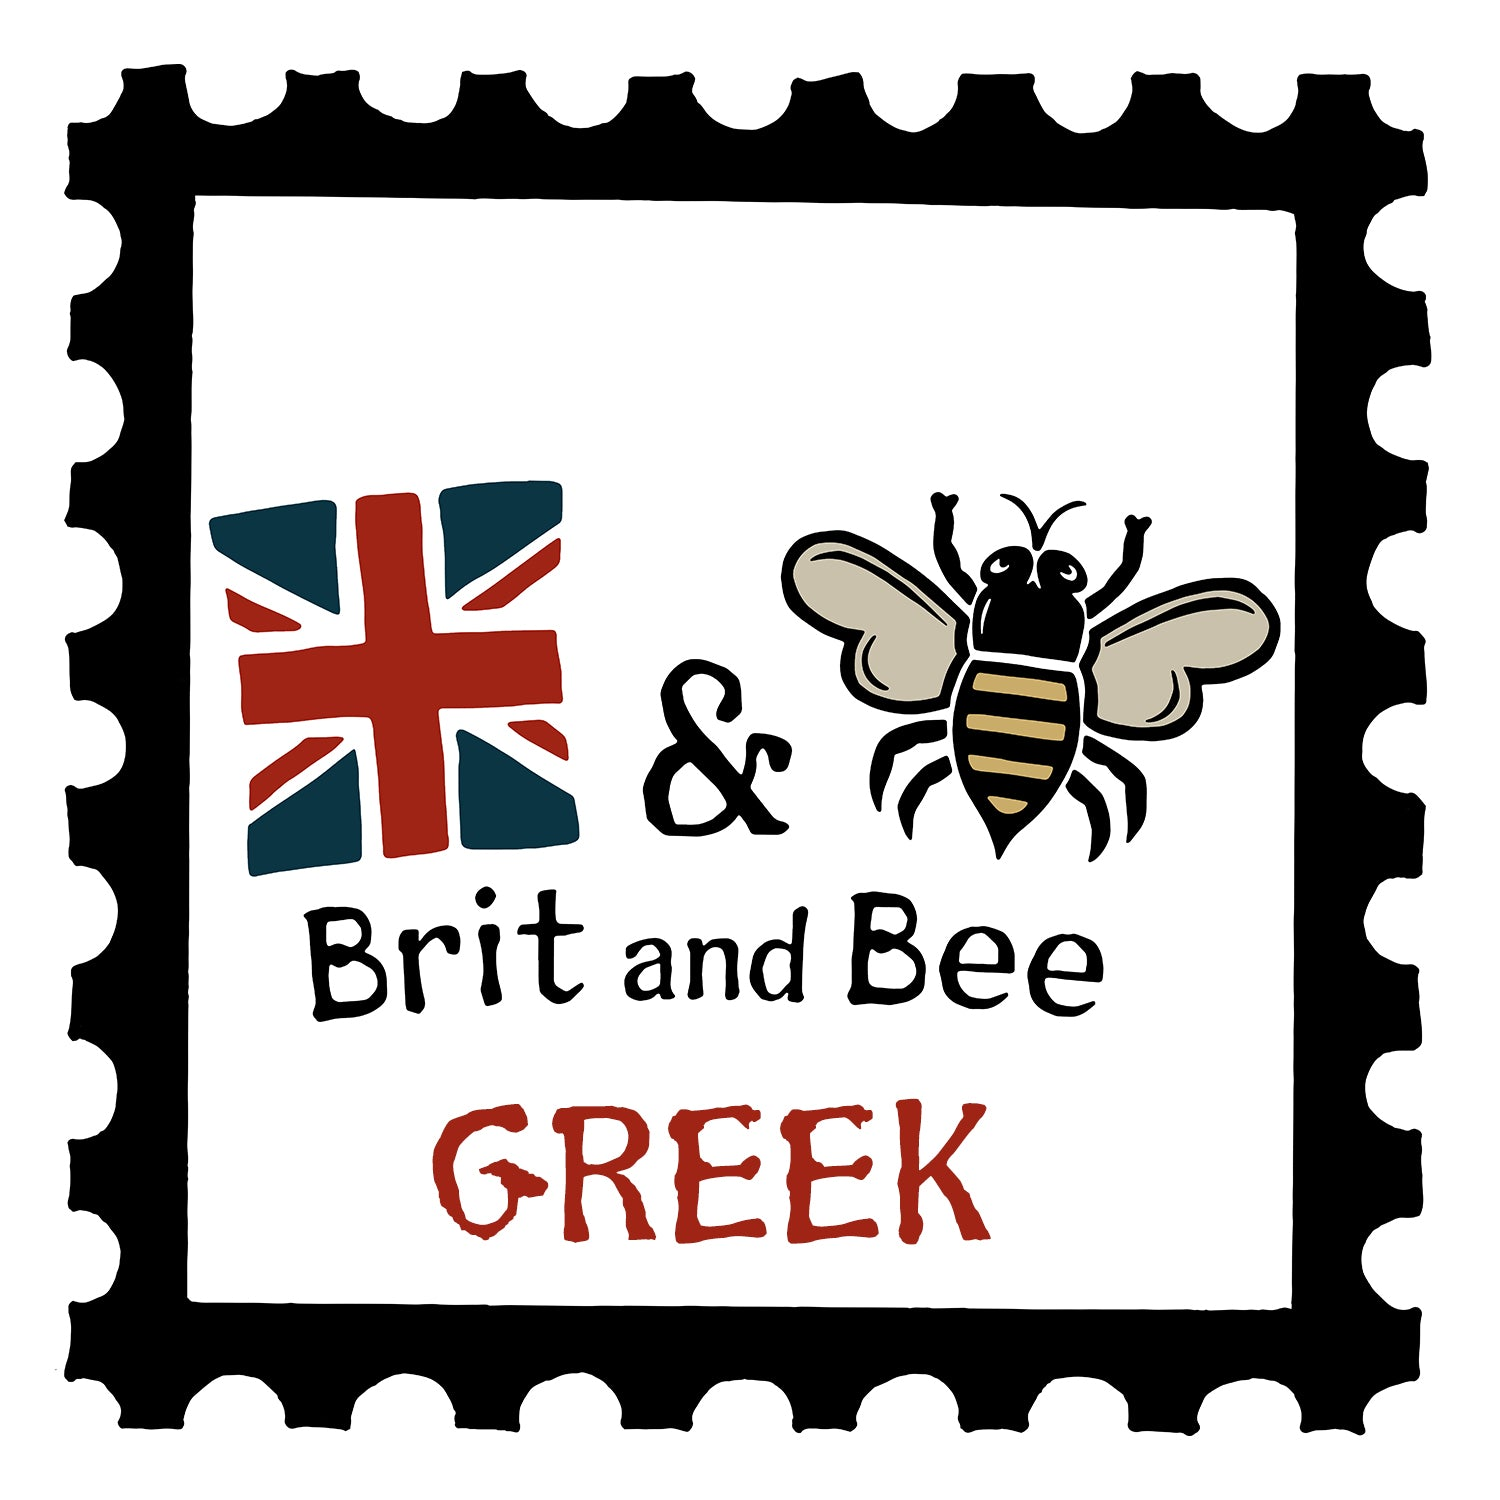 Brit and Bee Greek